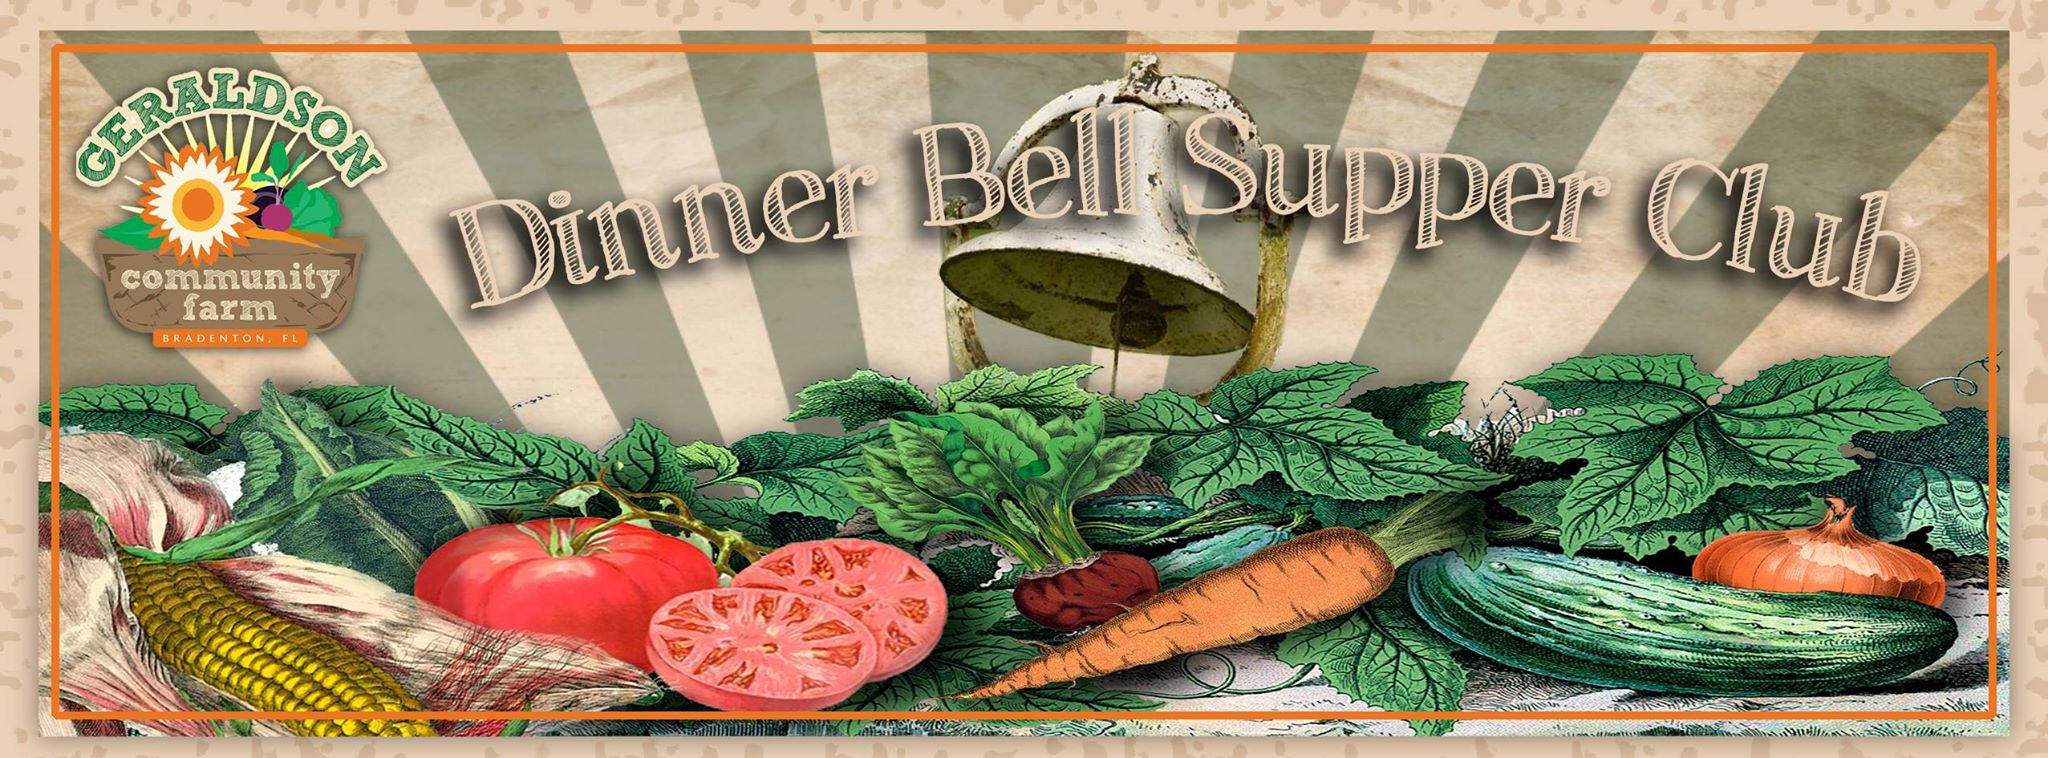 Geraldson Community Farm - Dinner Bell Supper Club